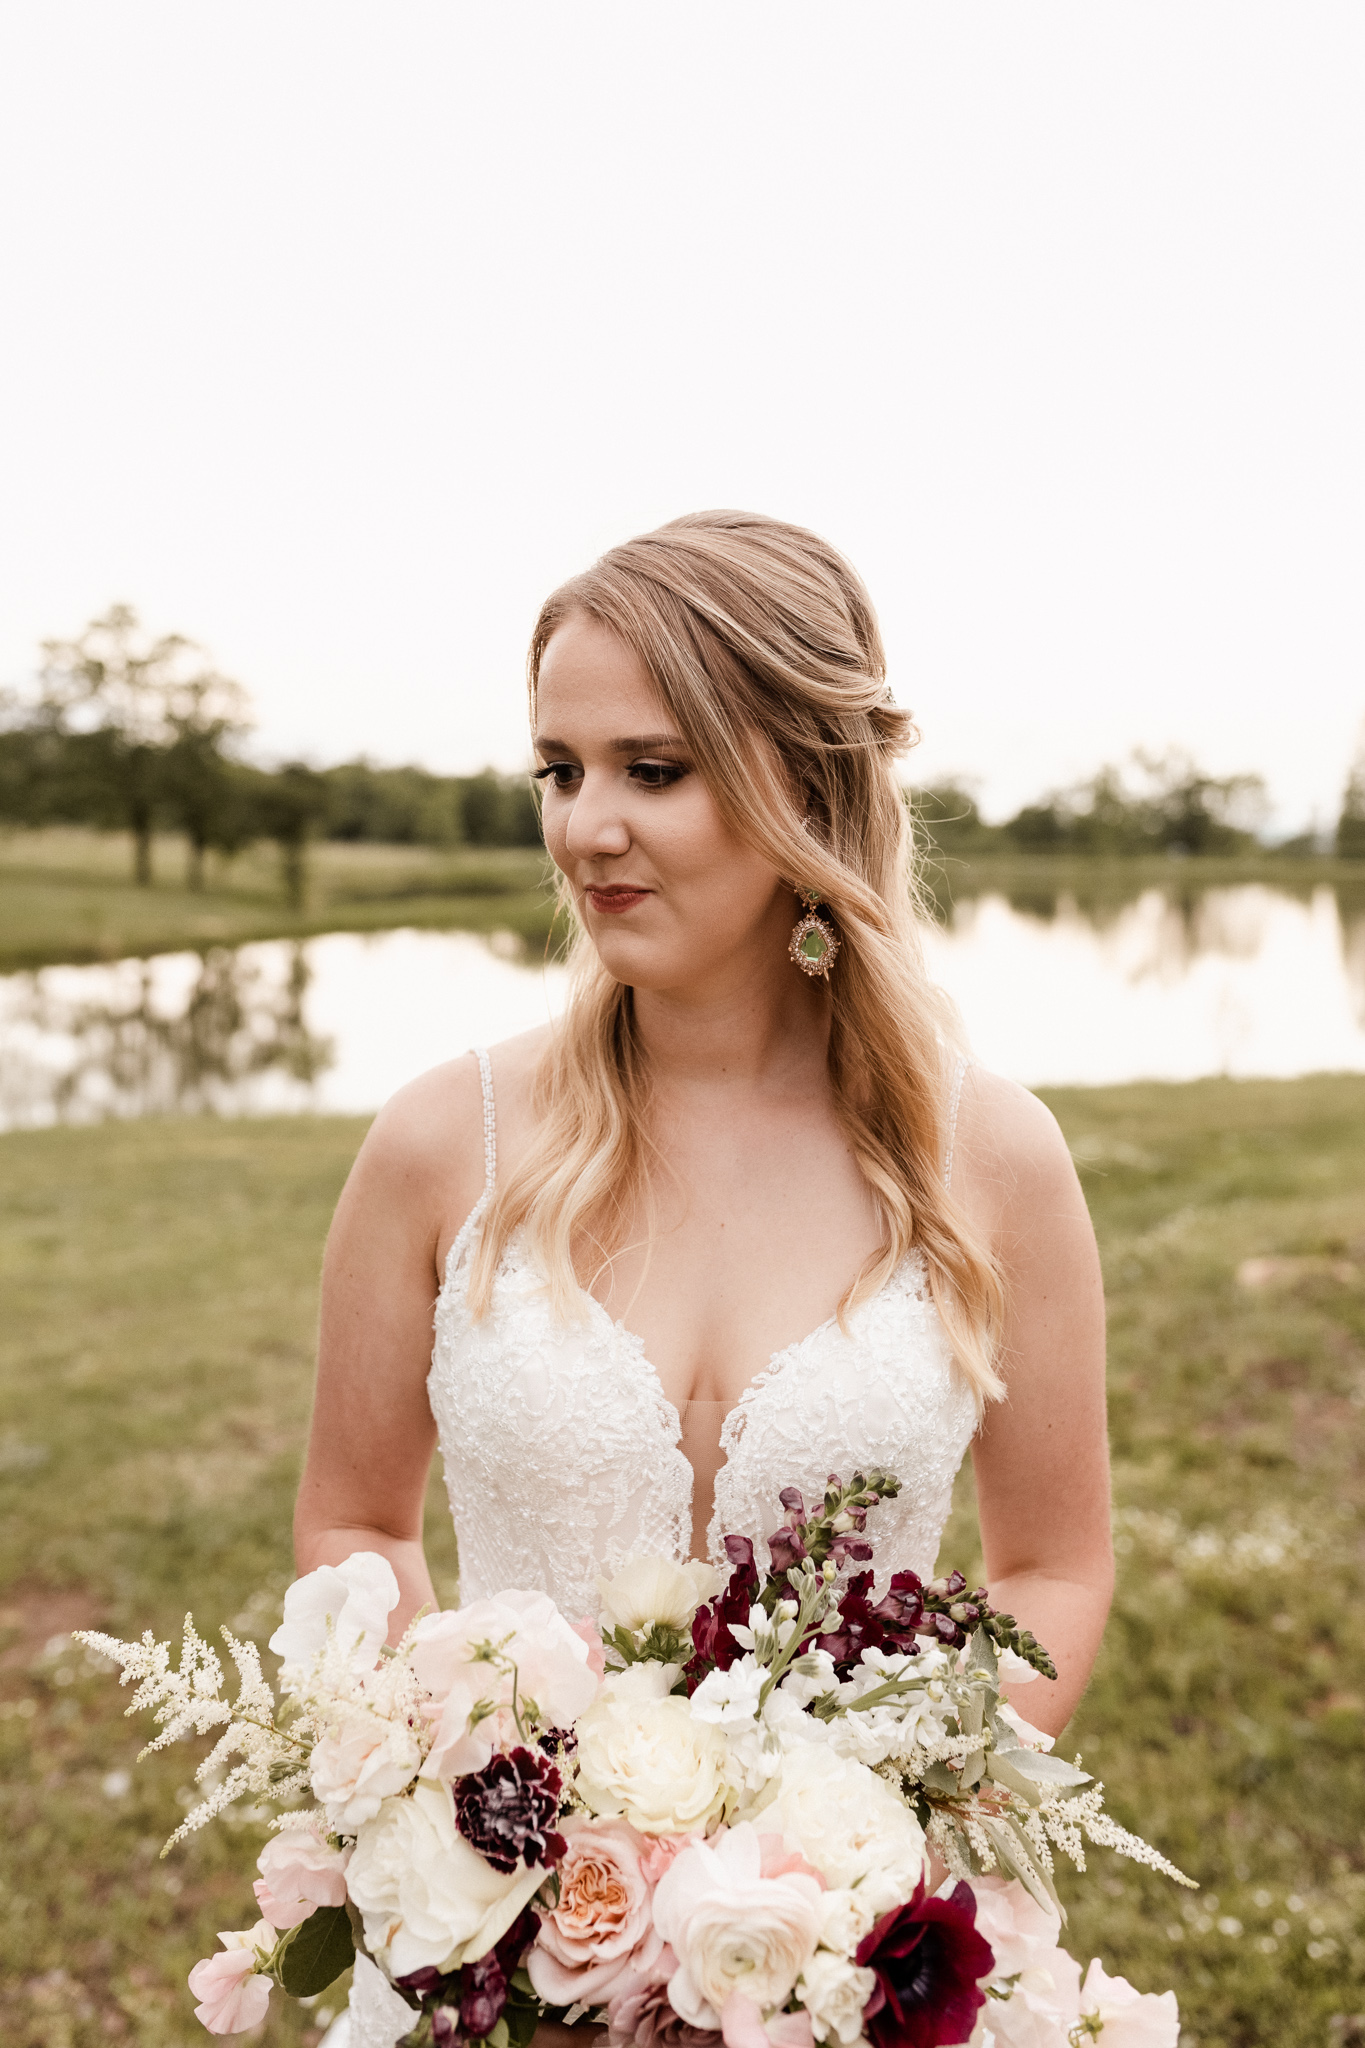 Brittany | Romantic Outdoor Bridals | Oklahoma Wedding Photographer-20.jpg